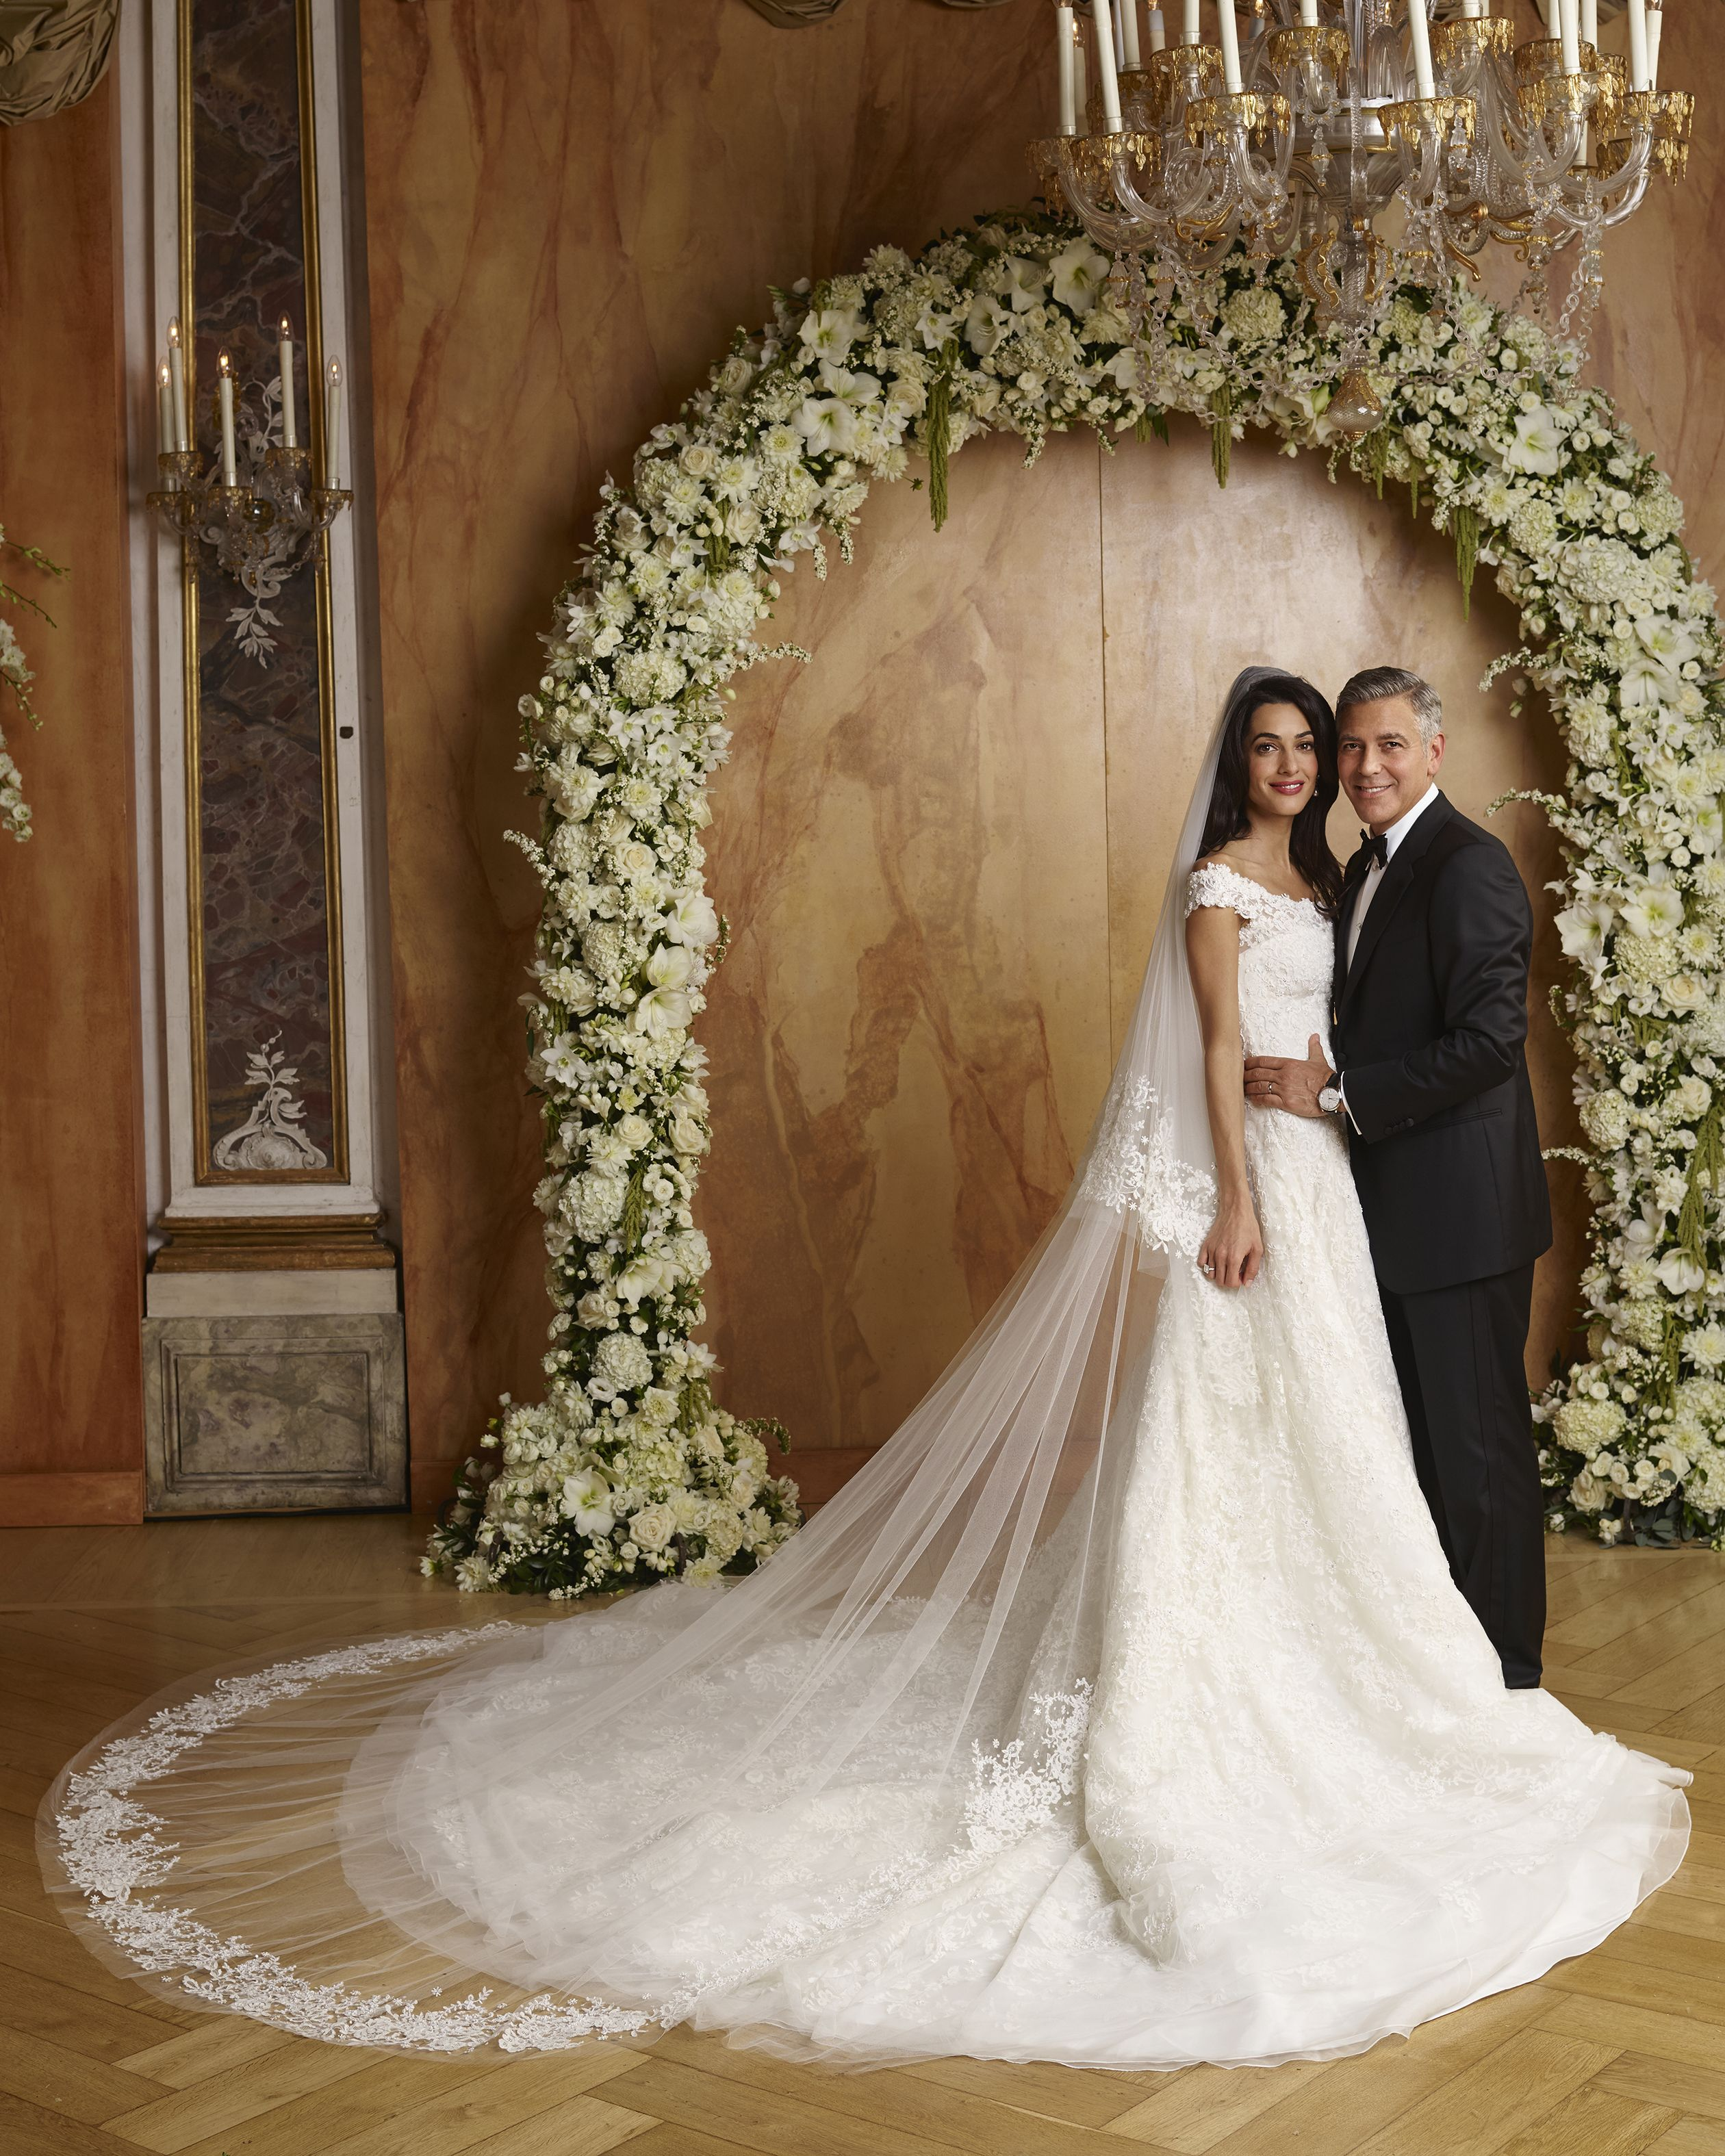 332939b9e06ea 50 Iconic Celebrity Wedding Dresses - Most Memorable Wedding Gowns in  History